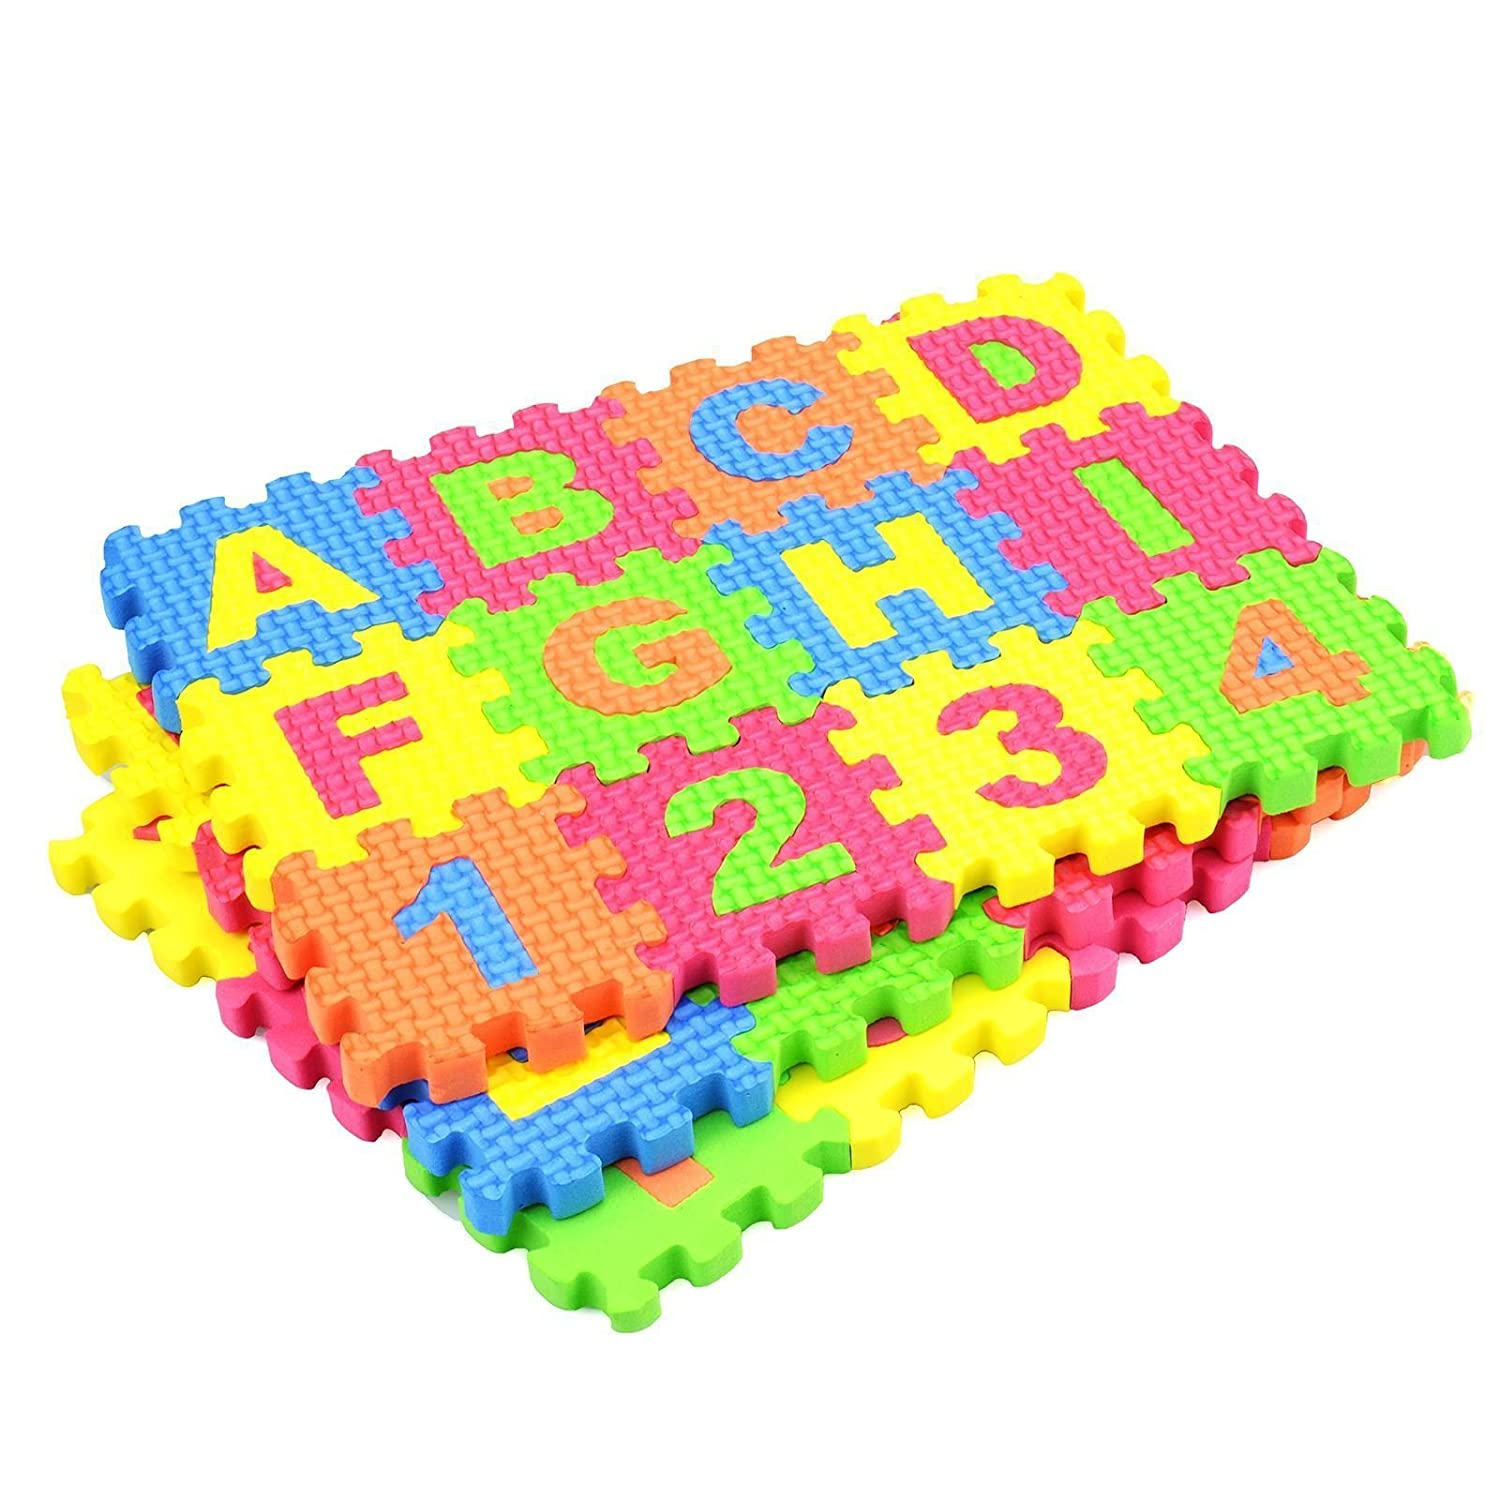 36pcs Soft EVA Foam Floor Mat Tiles Numbers Letters Alphabet Jigsaw Puzzle Children Kids Baby learn Play Room Indoor Outdoor ASAB